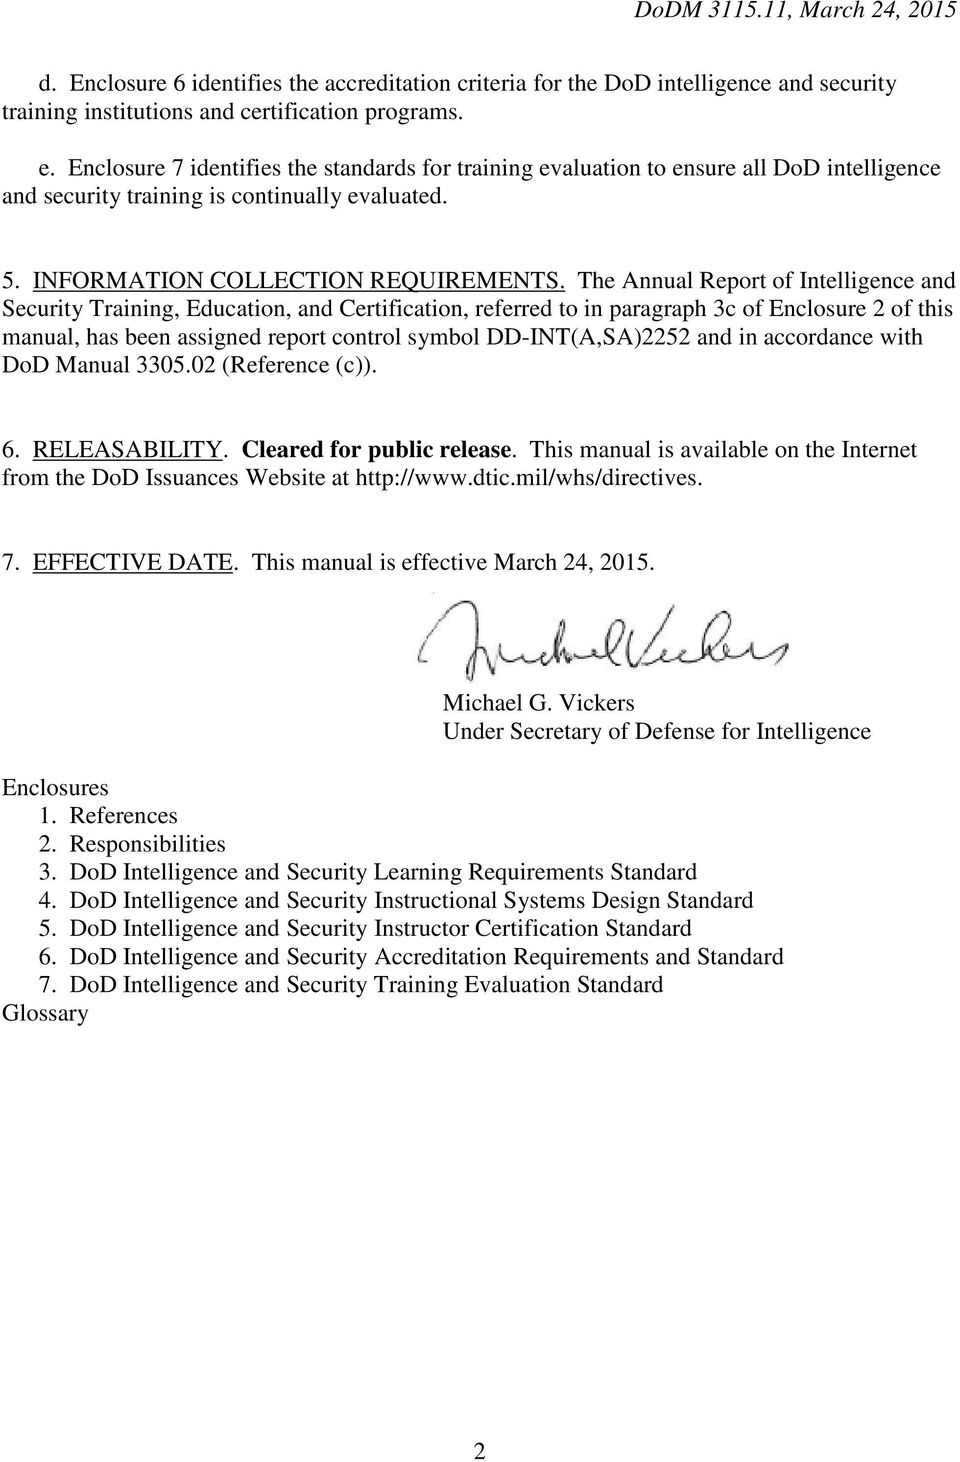 The Annual Report of Intelligence and Security Training, Education, and Certification, referred to in paragraph 3c of Enclosure 2 of this manual, has been assigned report control symbol